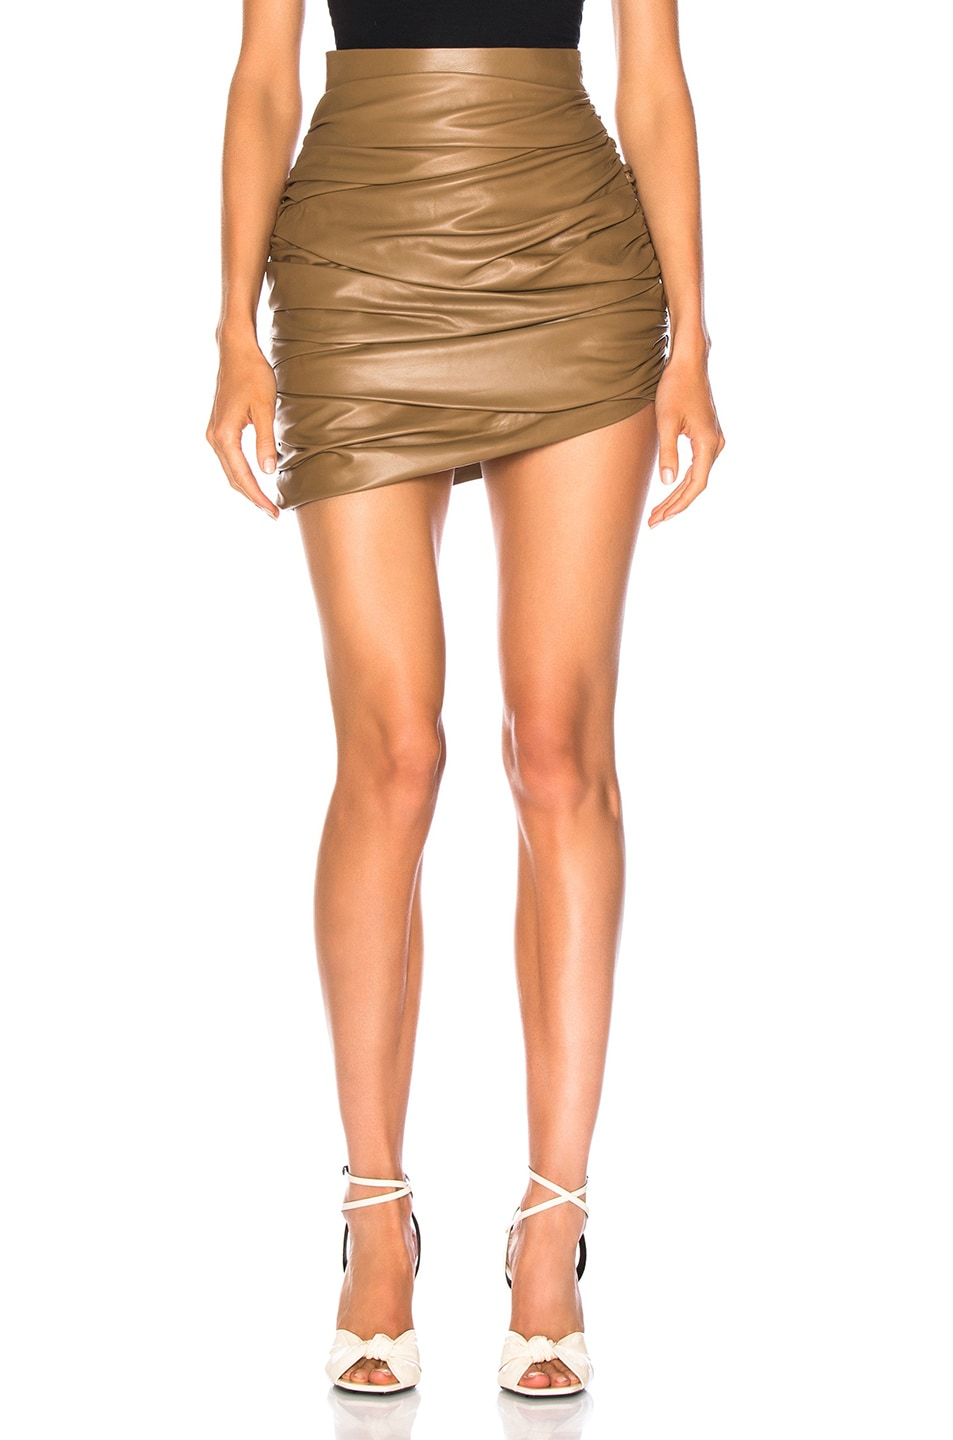 Image 1 of Zeynep Arcay for FWRD Draped Mini Leather Skirt in Creamy Coffee